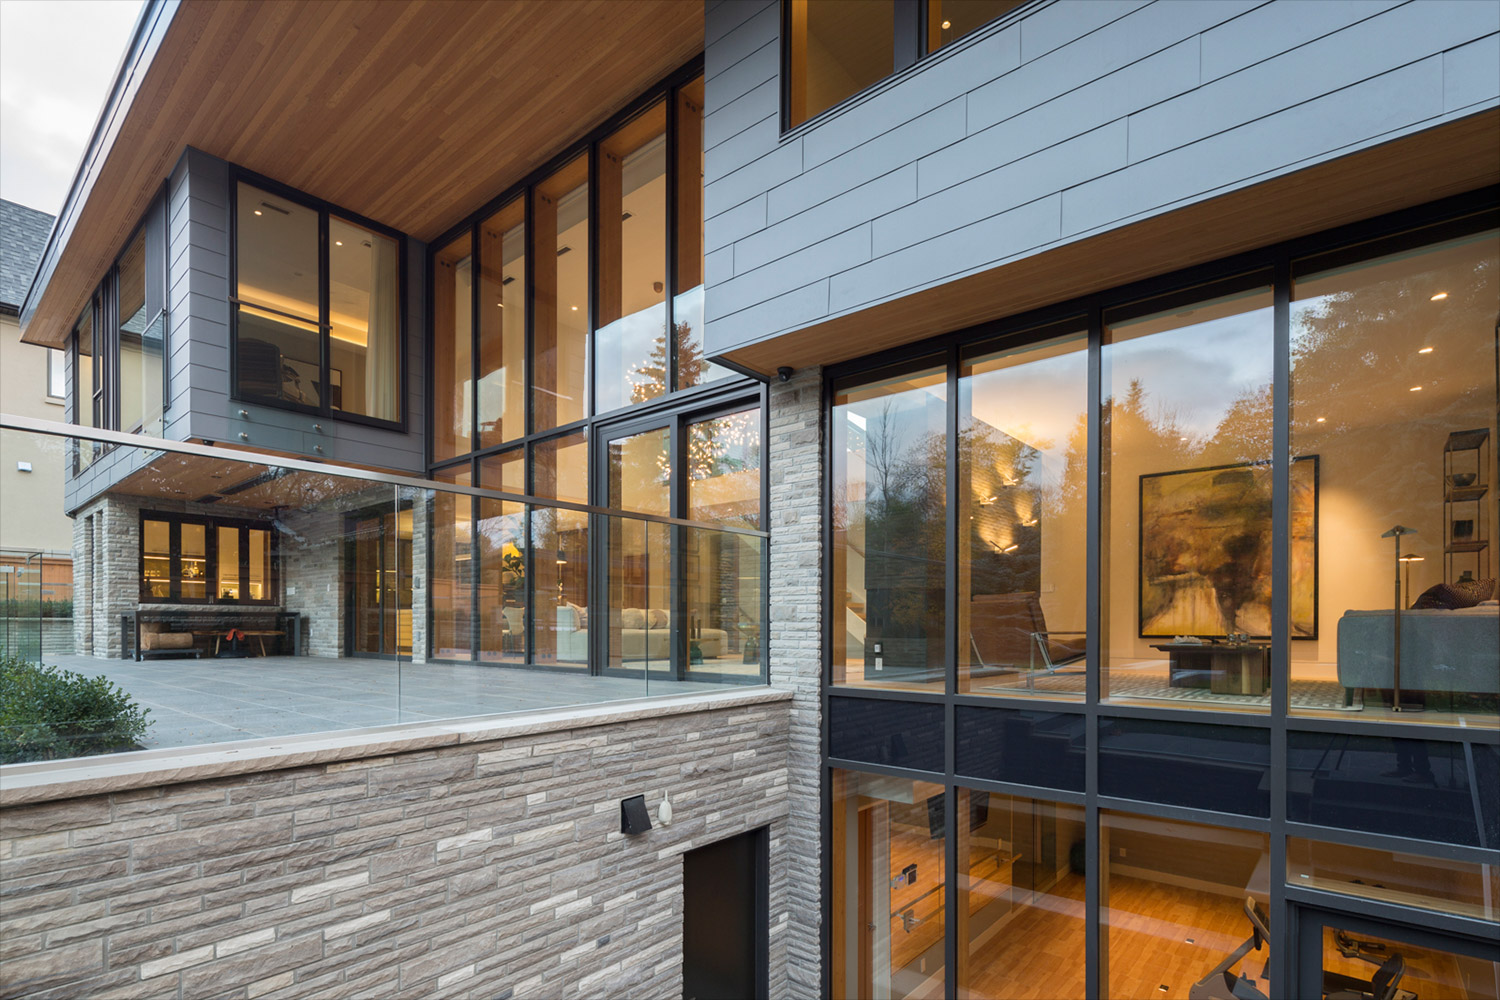 Basement walkout with Ledgerock veneer stone, Douglas fir soffits, Zinc siding